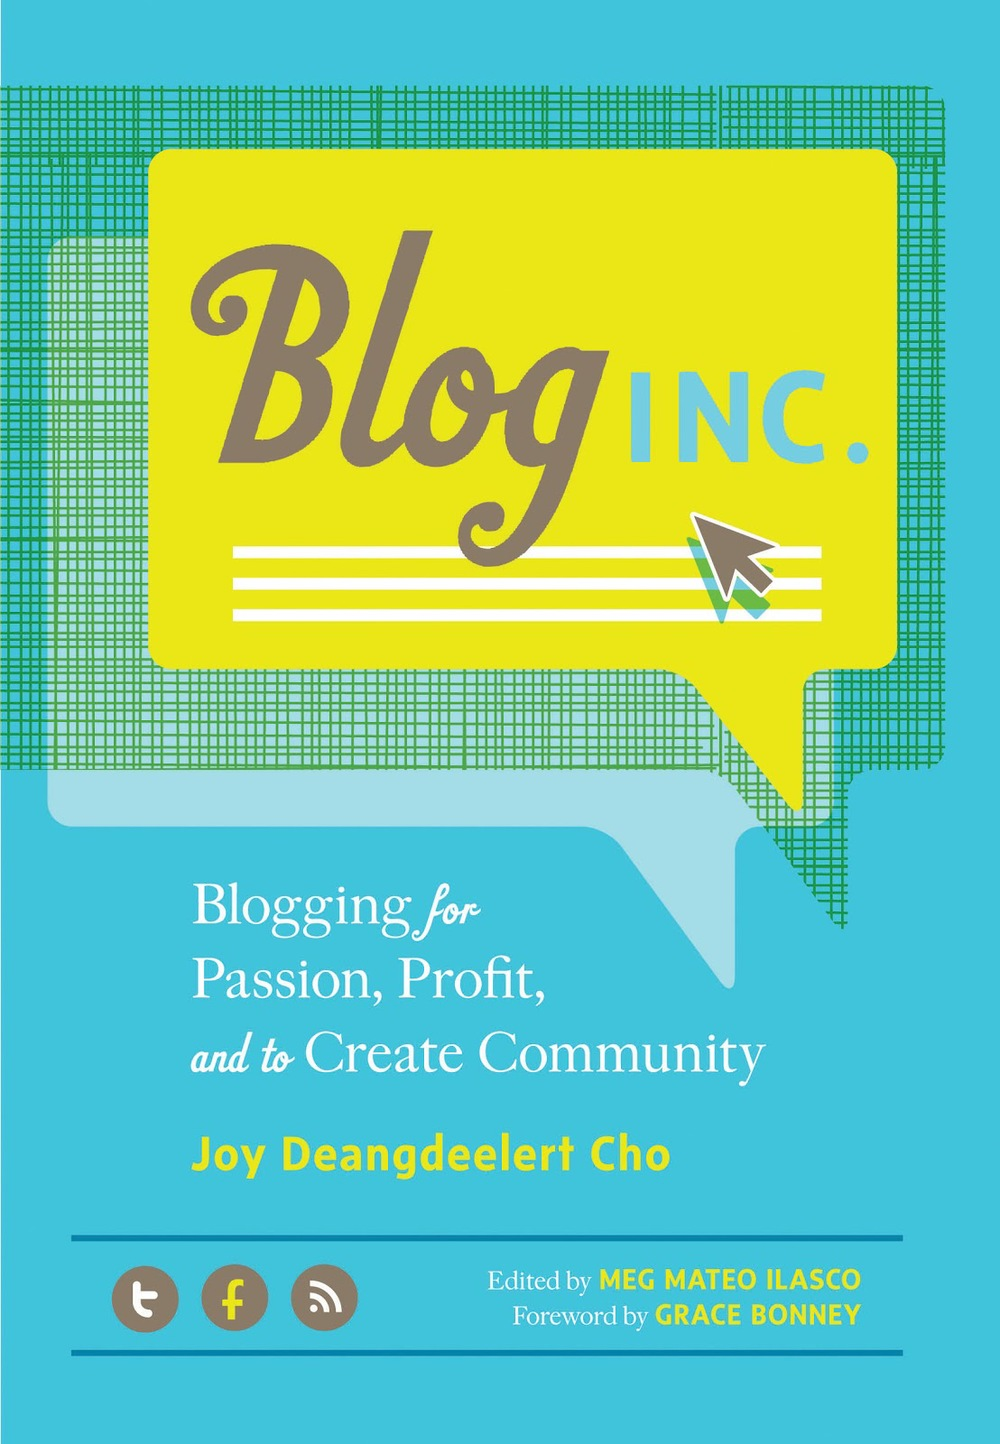 blog-inc-book-cover.jpg